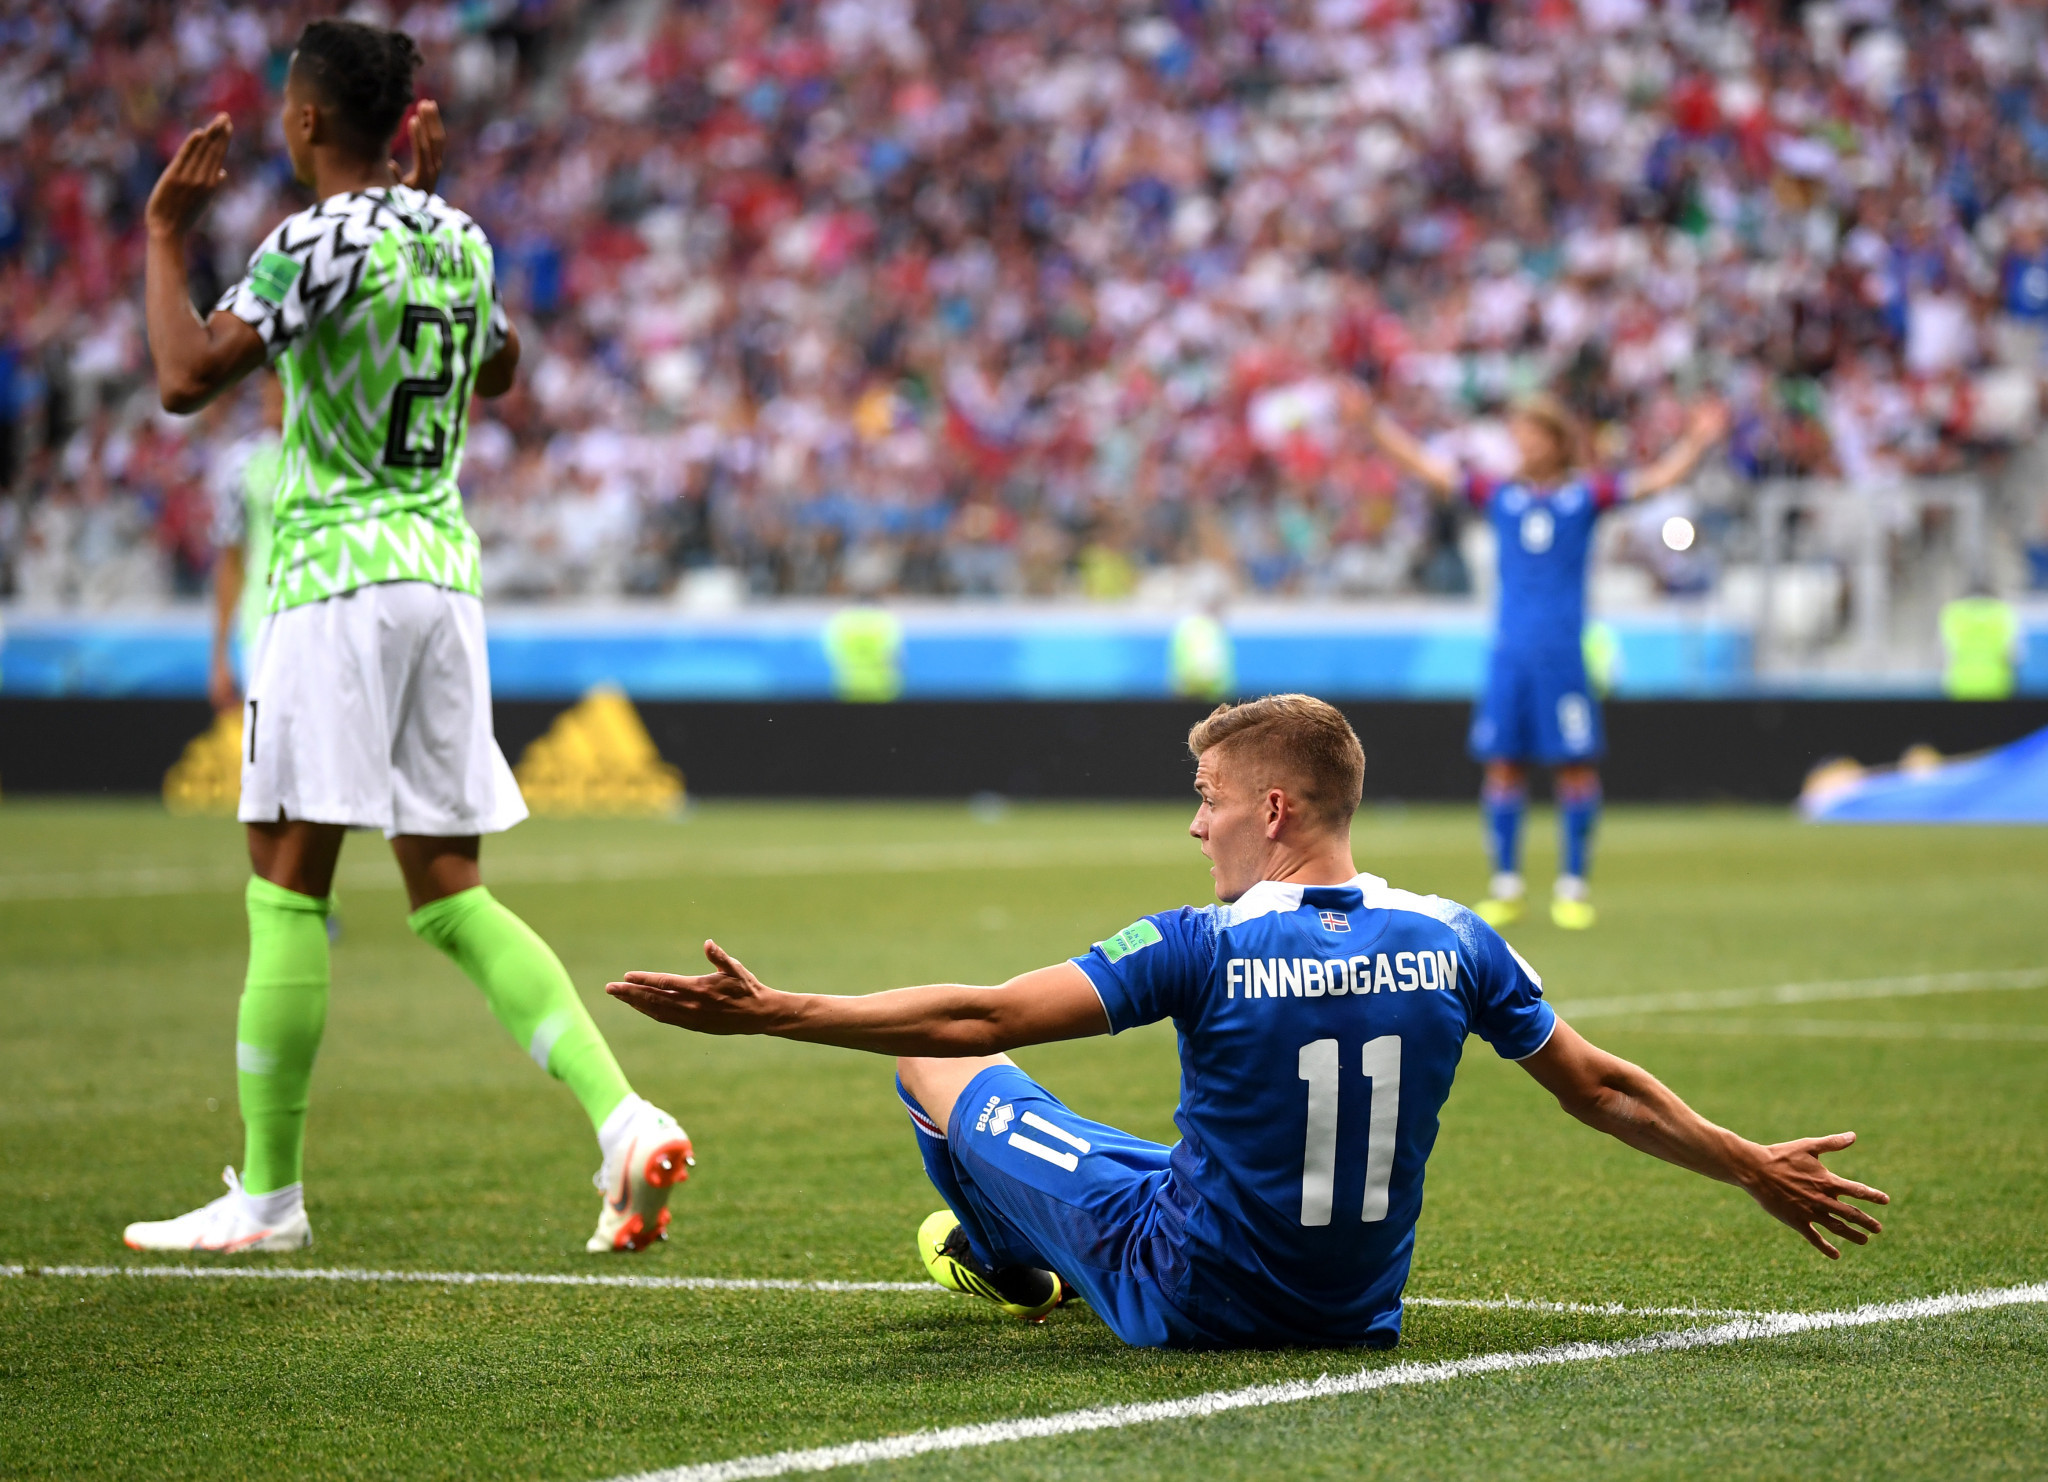 It came after Alfred Finnbogason had earned a penalty following a Video Assistant Referee review ©Getty Images